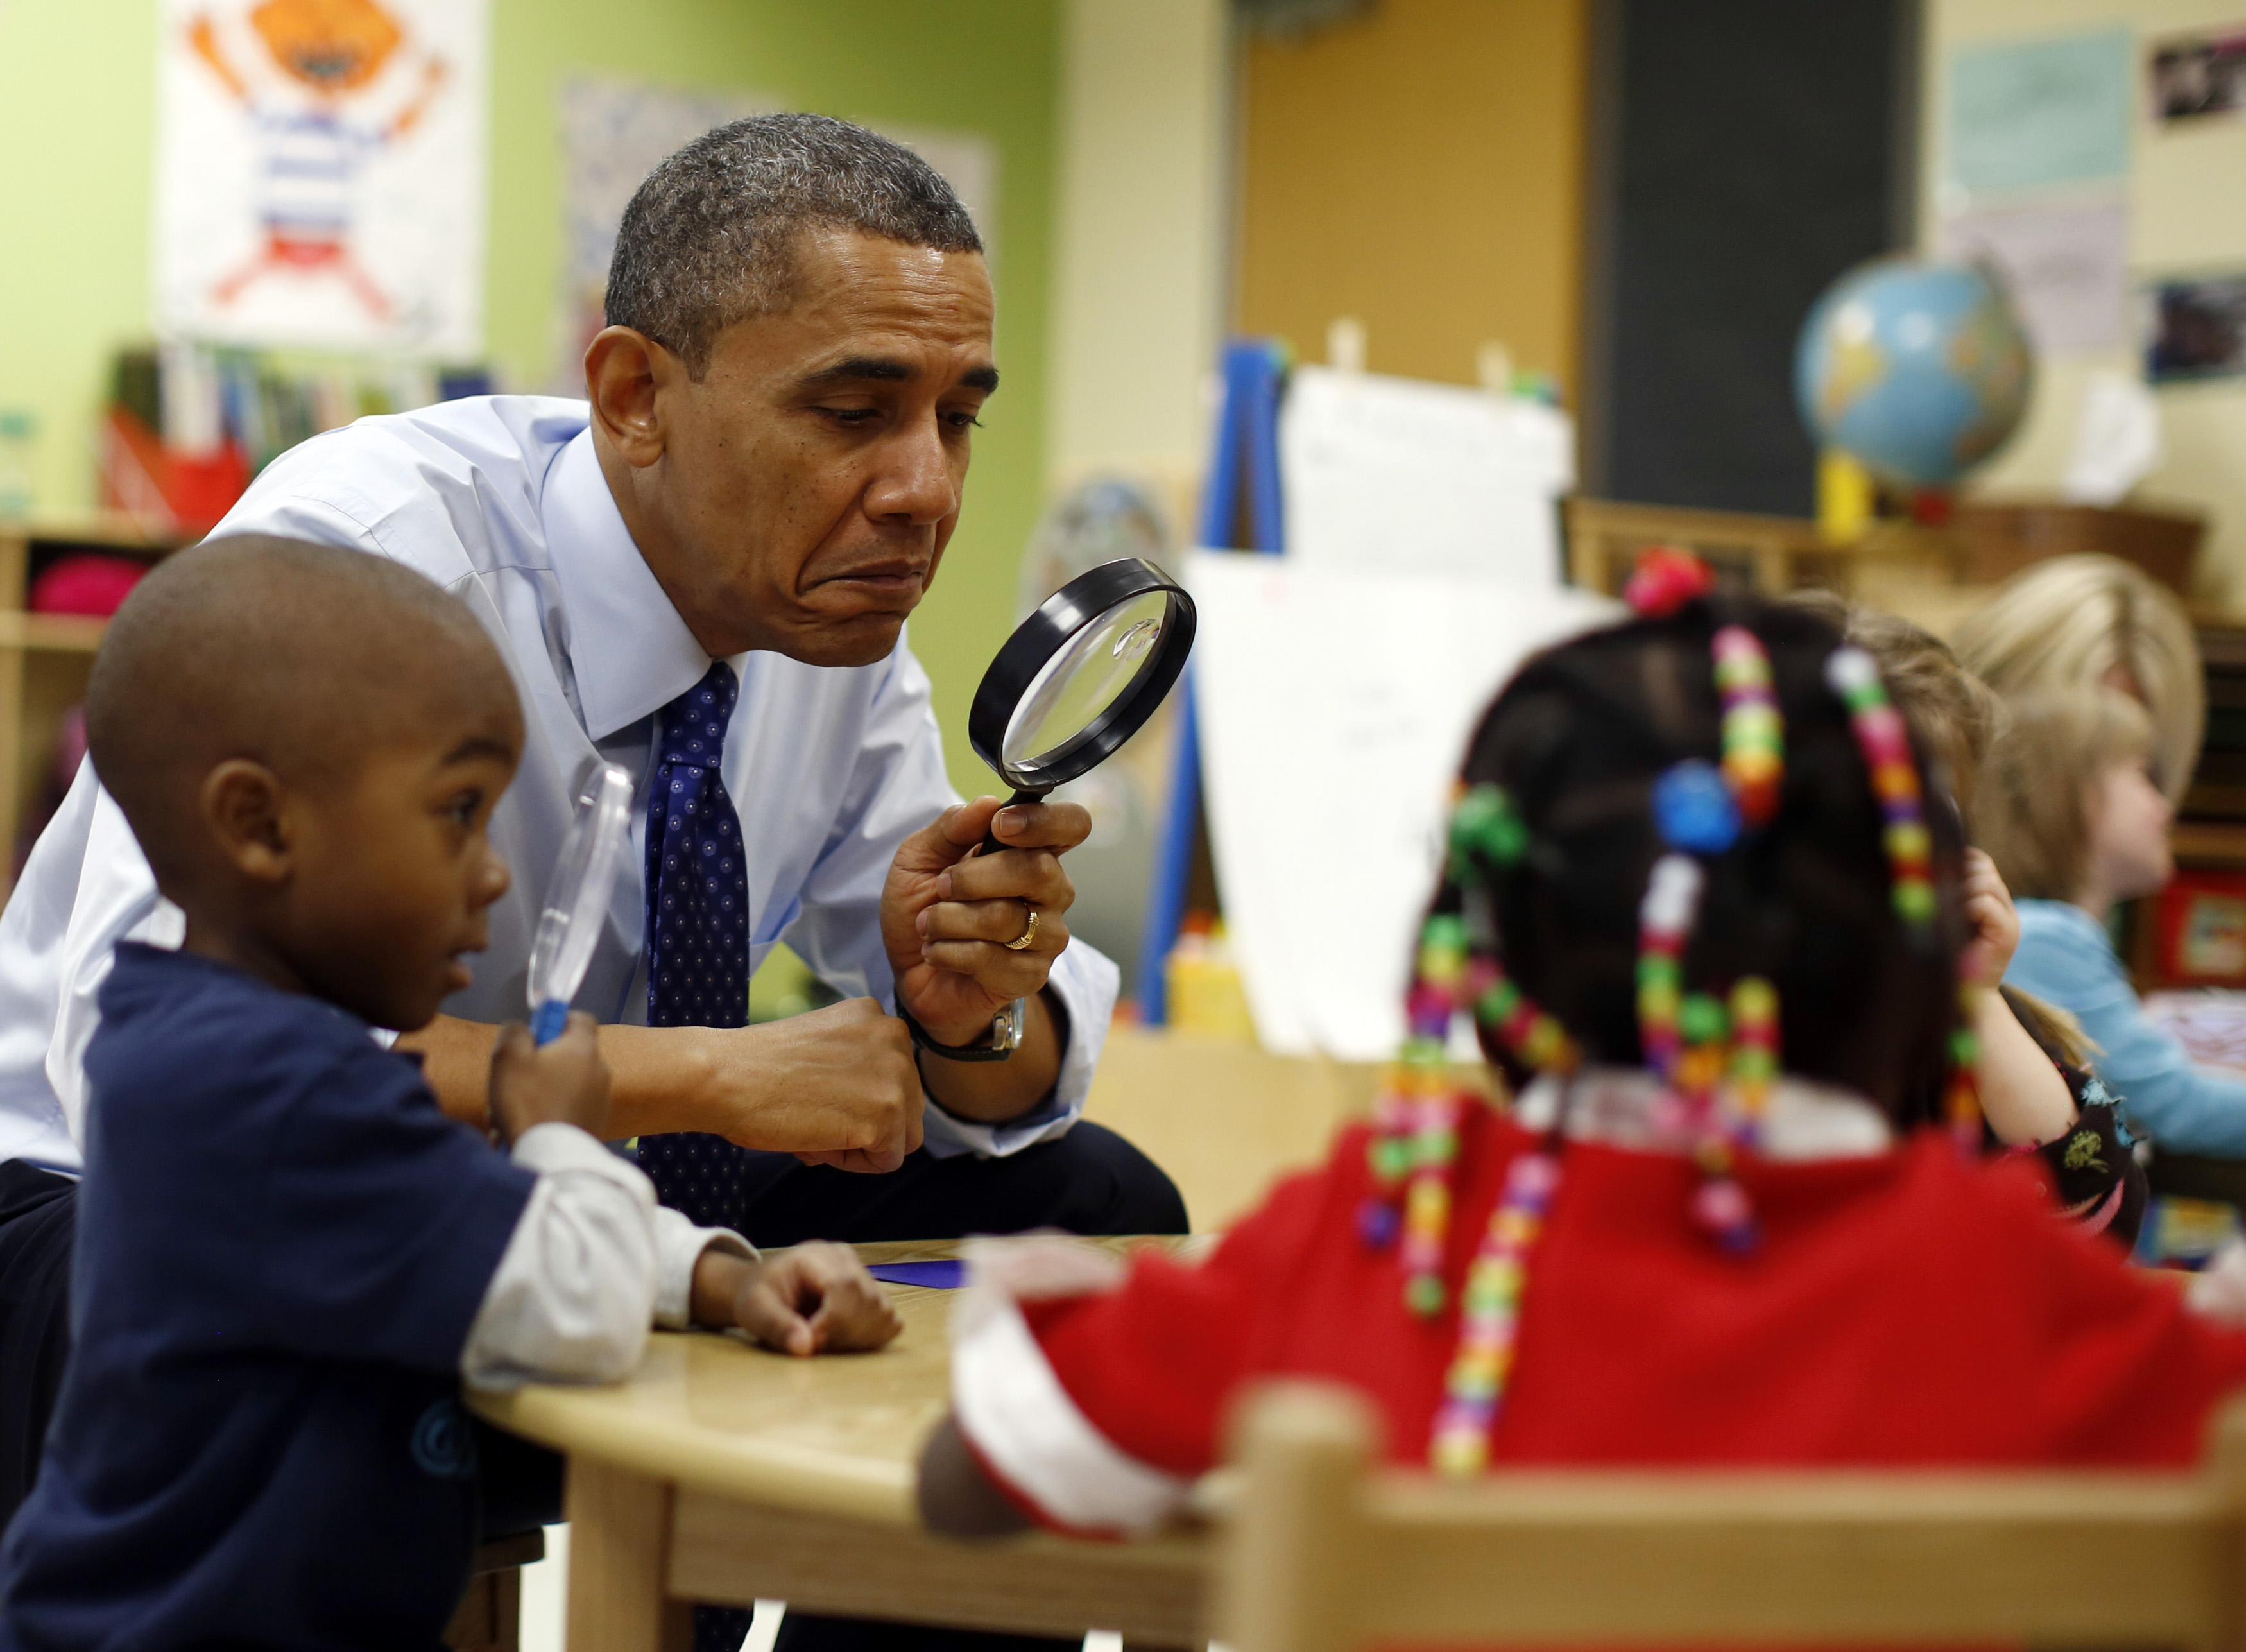 U.S. President Barack Obama uses a magnifying glass to play a game with children in a pre-kindergarten classroom at College Heights early childhood learning center in Decatur February 14, 2013. Obama flew to Georgia to push his plan to ensure high-quality preschool, unveiled during his State of the Union address this week.  REUTERS/Jason Reed   (UNITED STATES - Tags: POLITICS EDUCATION TPX IMAGES OF THE DAY) - RTR3DSJL